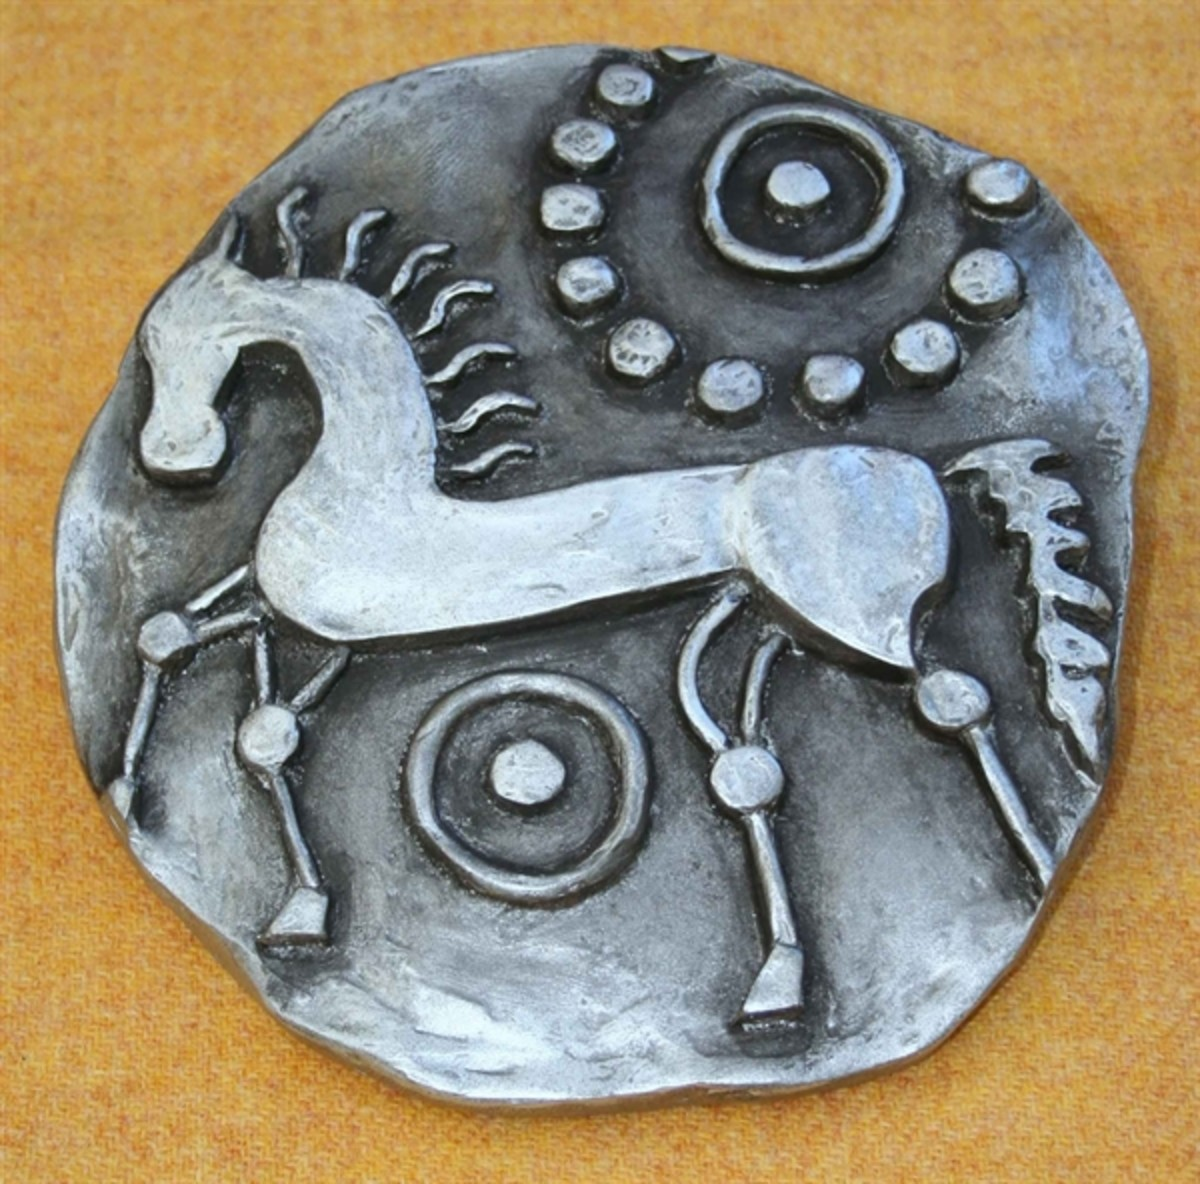 Celtic horse coin design from an original - note the 'sun' circle design above the horse's back, another aspect of Celtic worship